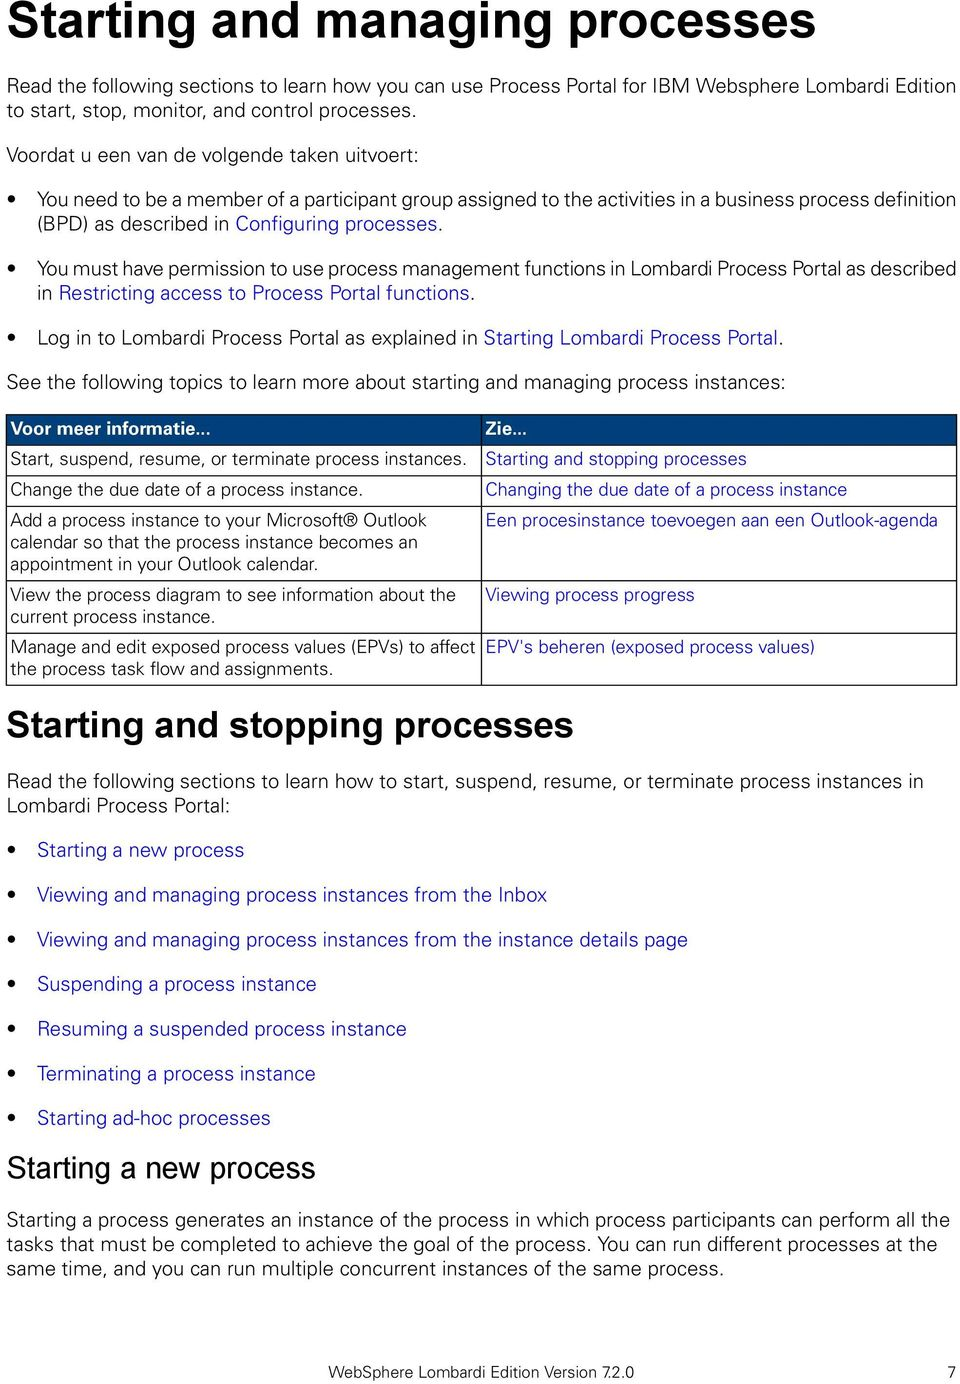 You must have permission to use process management functions in Lombardi Process Portal as described in Restricting access to Process Portal functions.